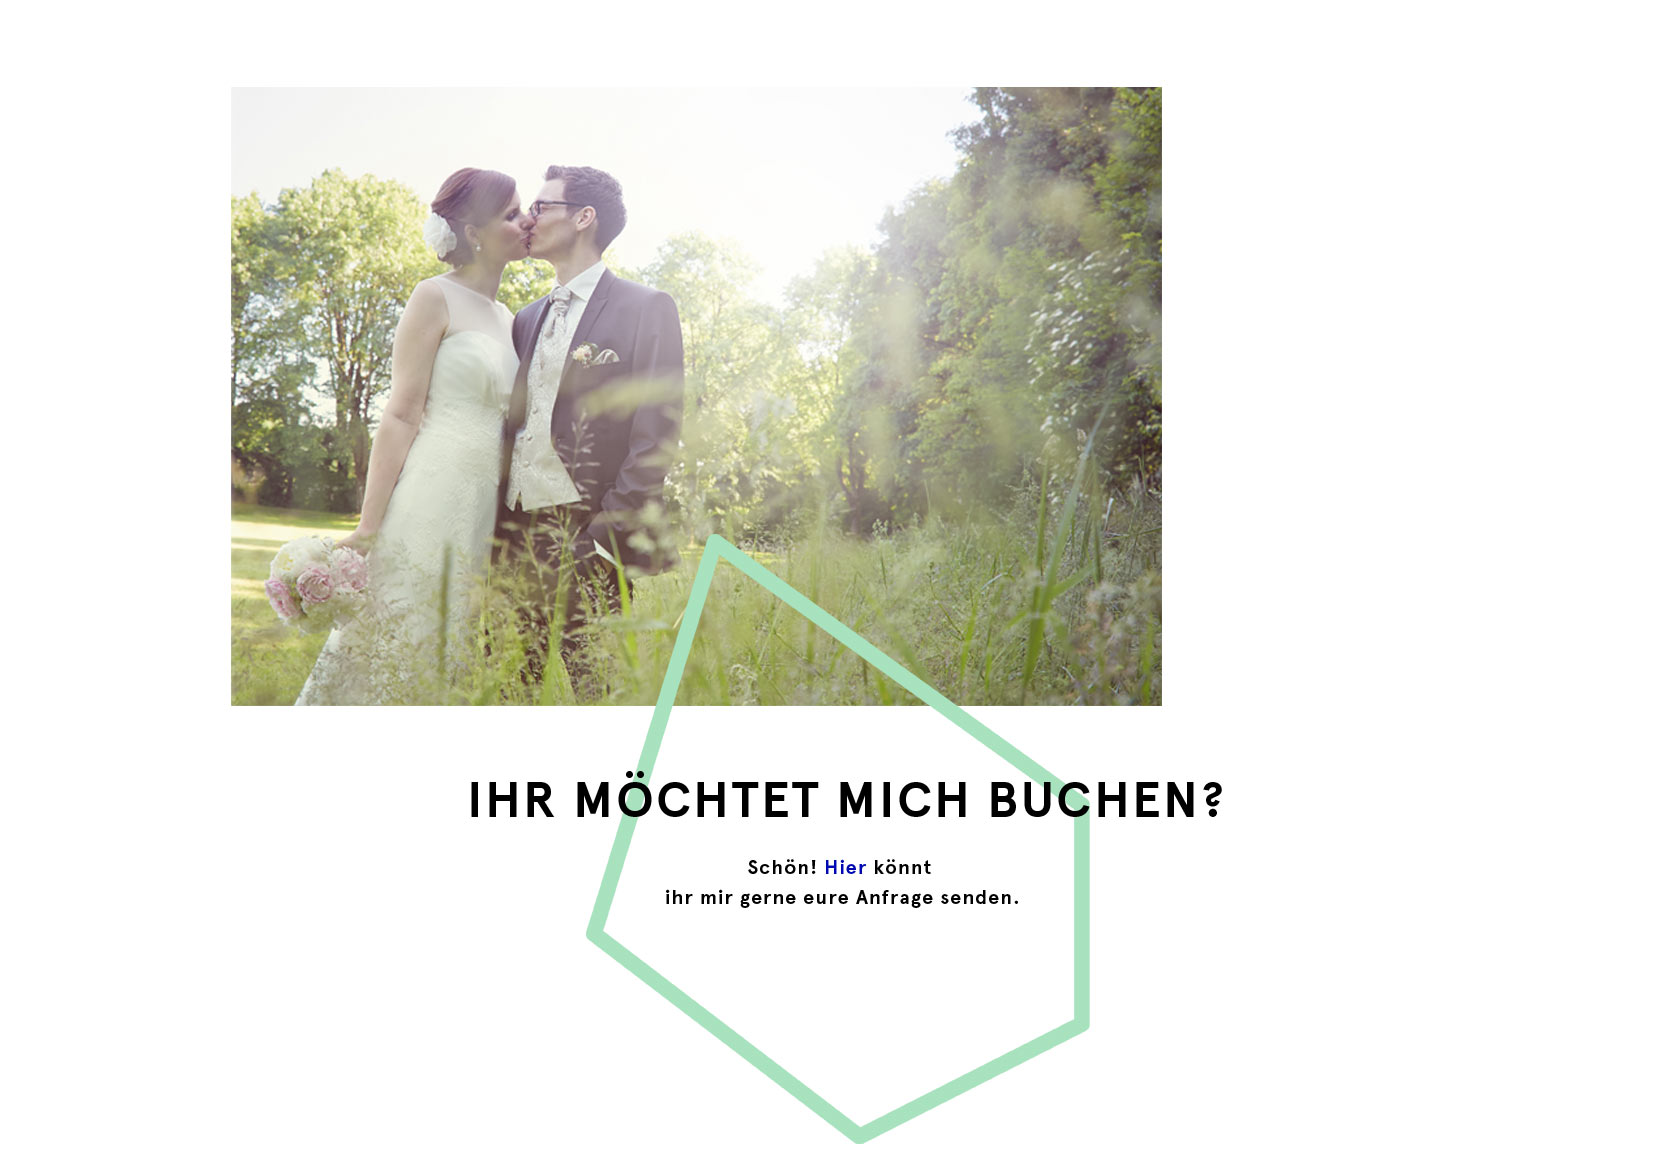 YES WE DO - WEDDING SERVICES Hochzeitsfotografie München